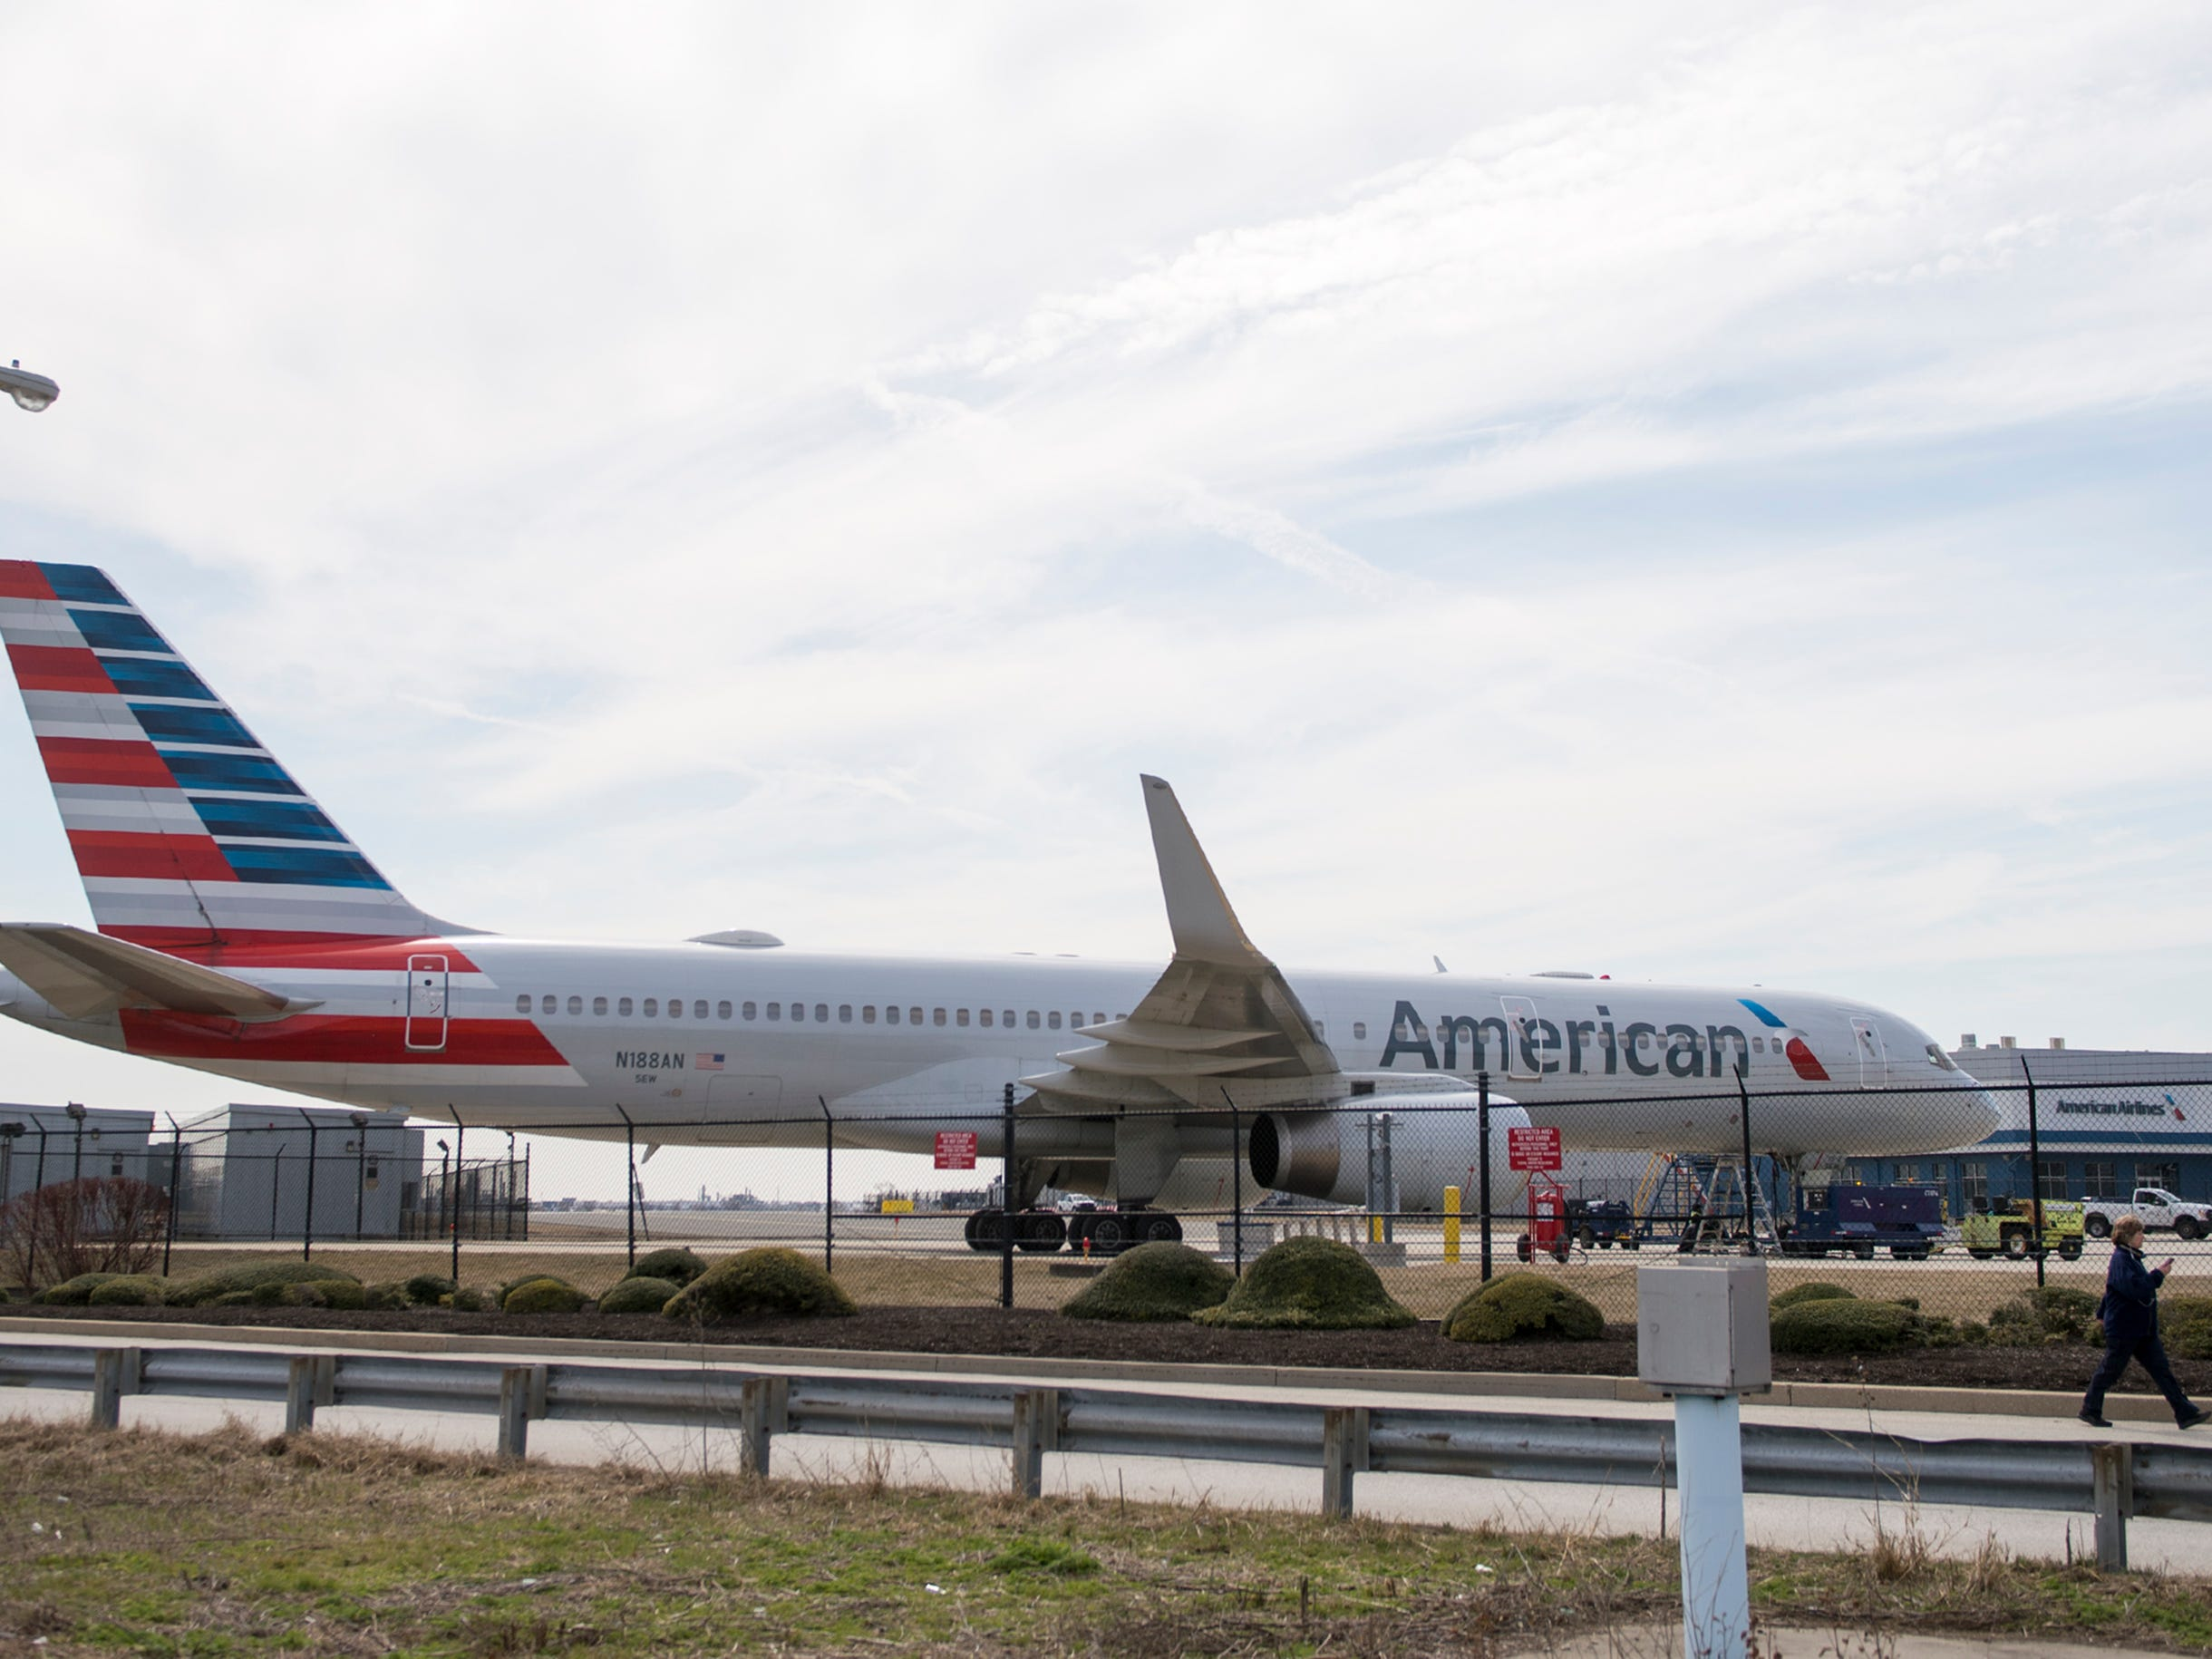 An American Airlines Boeing 757 is parked Thursday, March 14, 2019 at Philadelphia International Airport in Philadelphia, Pa.